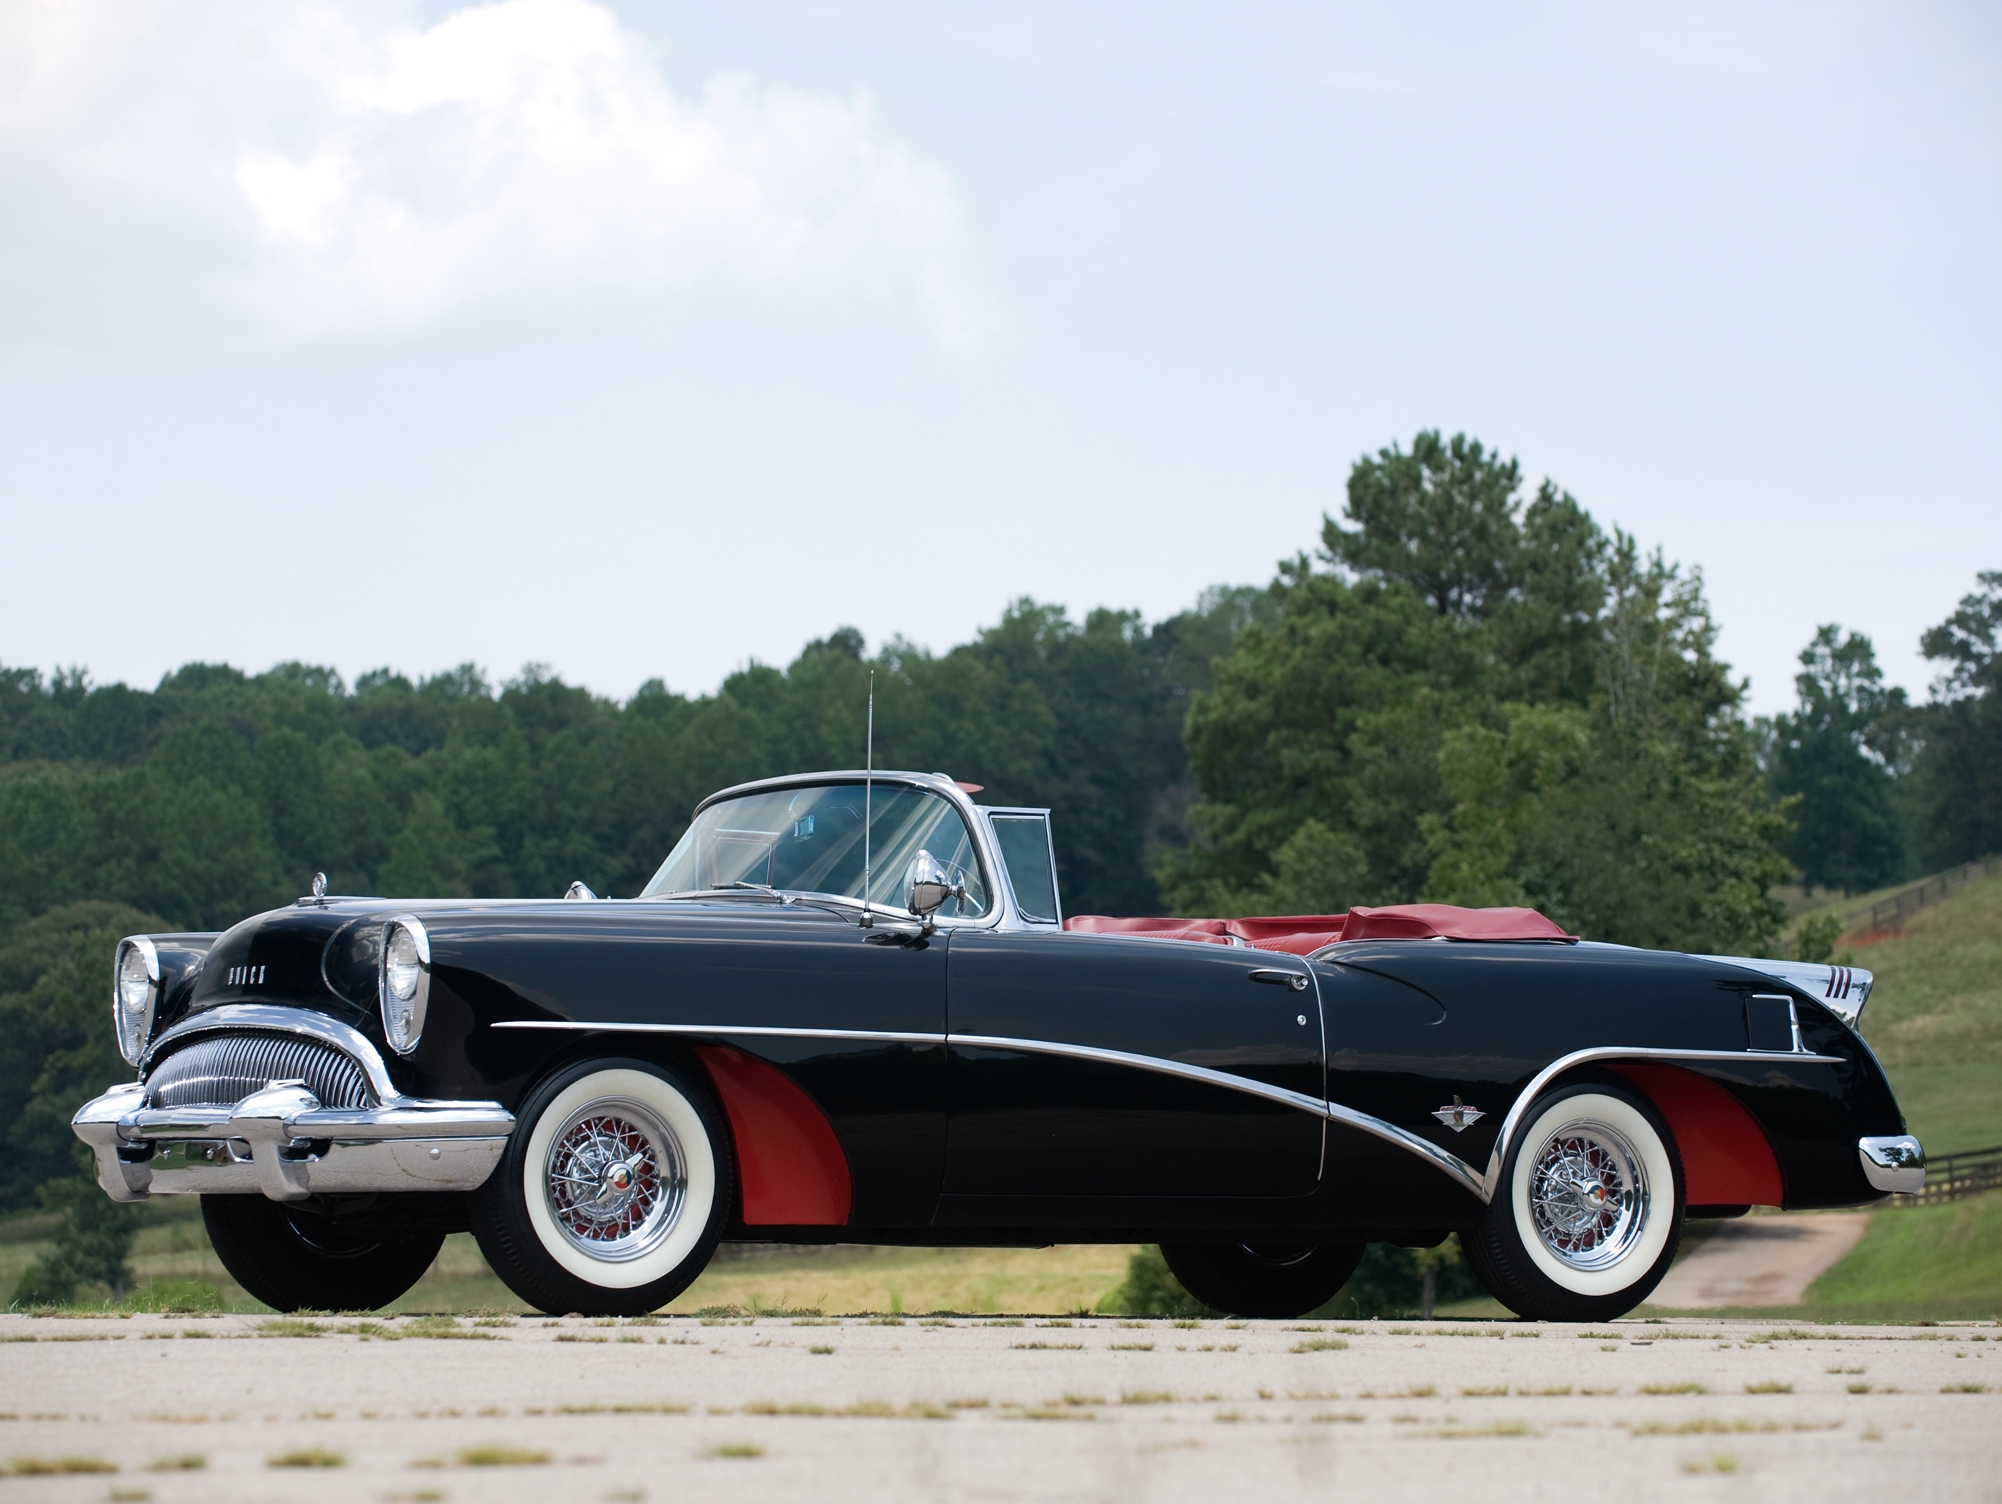 Vehicles - 1953 Buick Skylark Convertible Coupe  - 1954 Buick Skylark Convertible Wallpaper